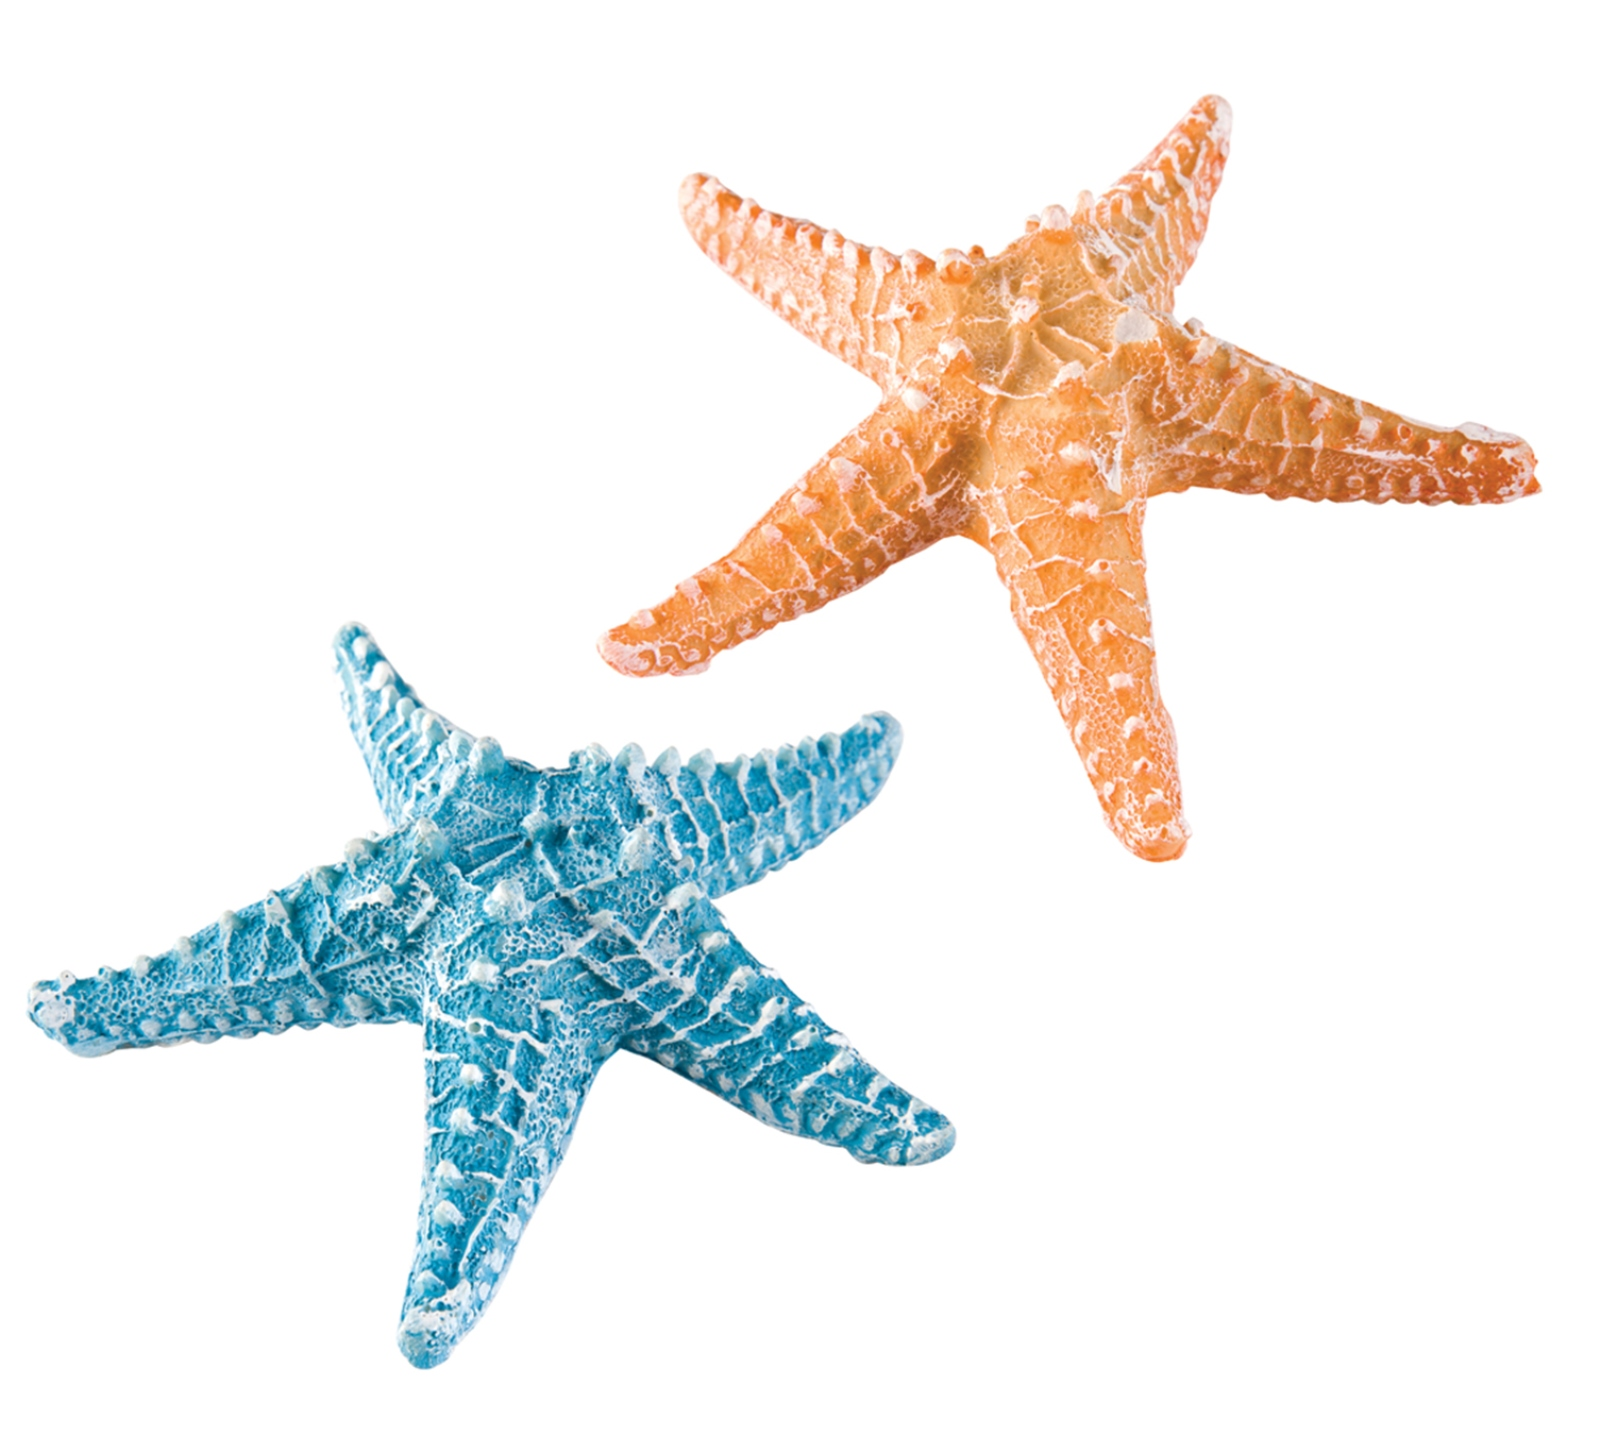 Direct Import Home Decor Seaside Starfish 6 Inch Tabletop Figurines Blue And Orange